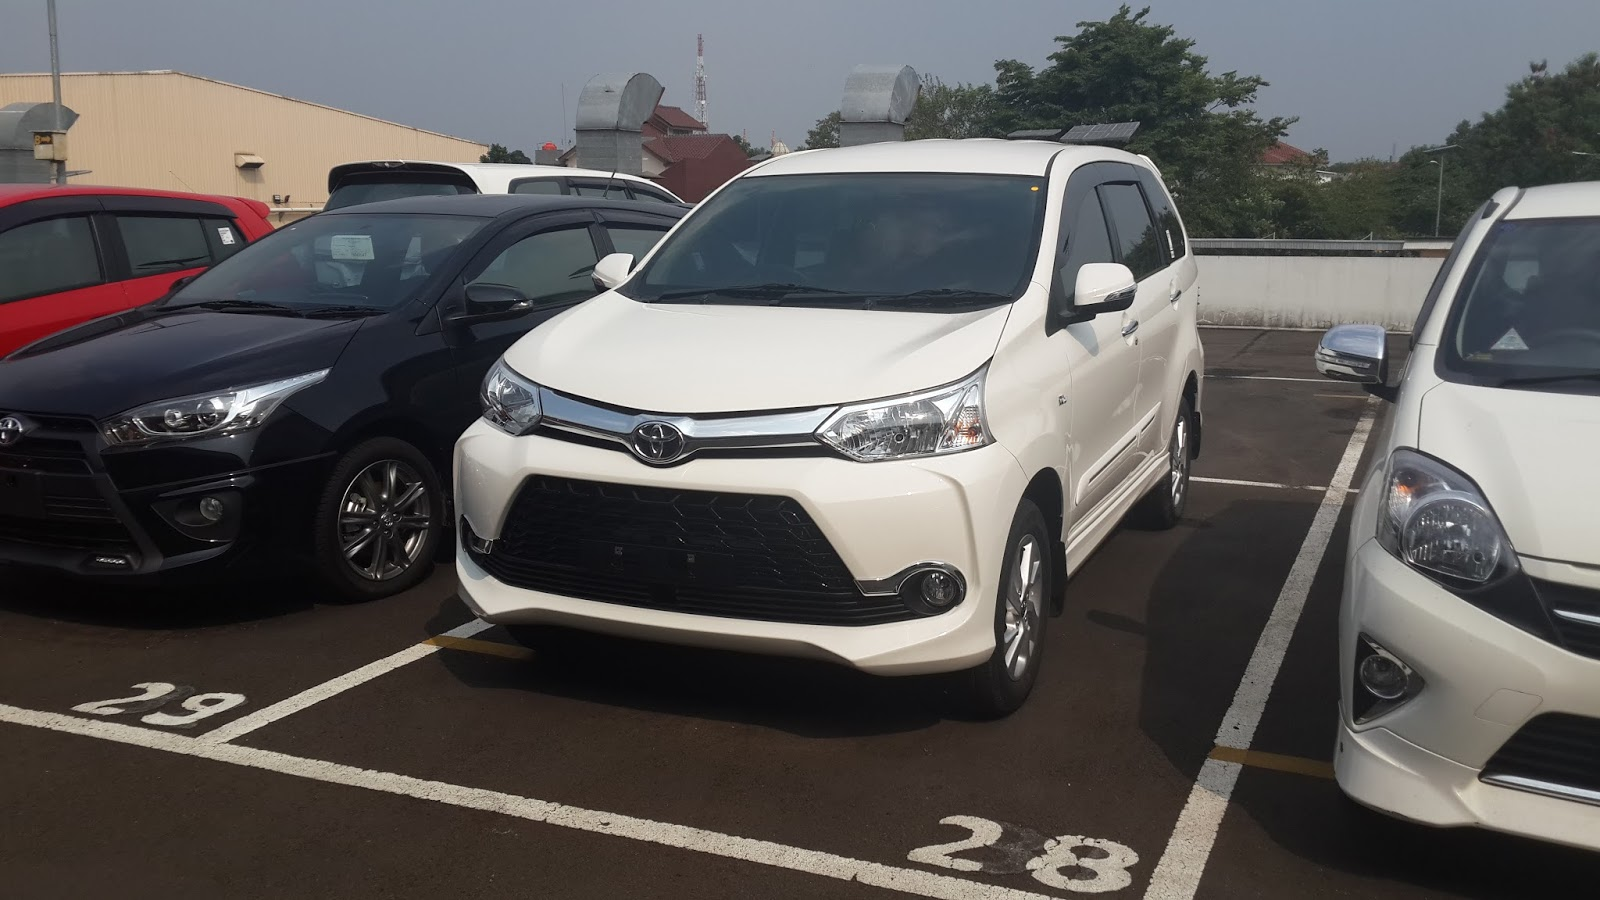 kompresi grand new avanza 2016 xpander vs toyota all bogor foto